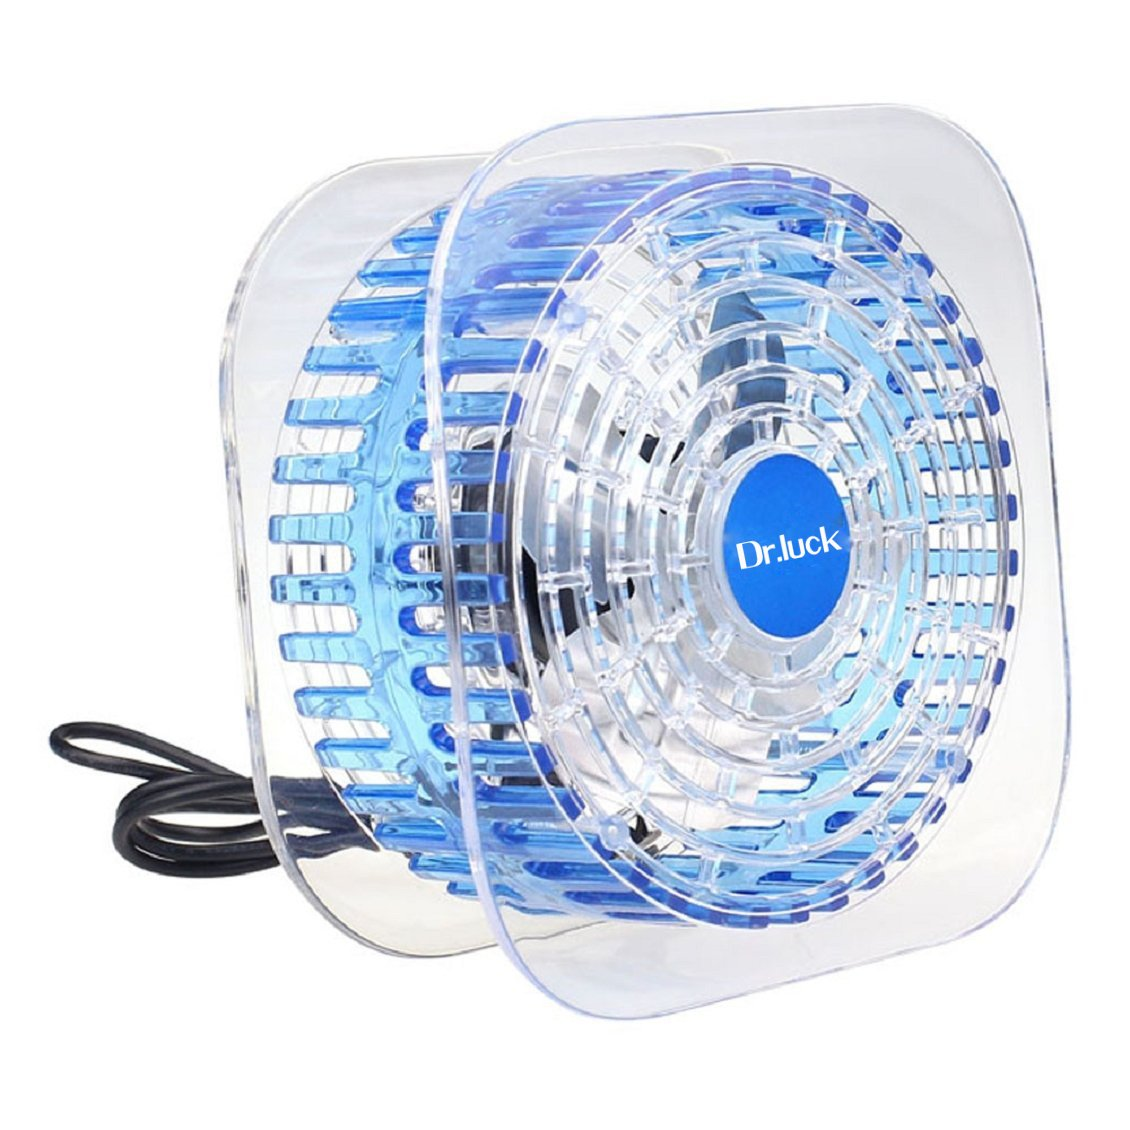 Drluck New Portable Mute Usb Cooler Cooling Mini Fan Transparent Mf 1130 Wiring Diagram Sky Blue Office Products